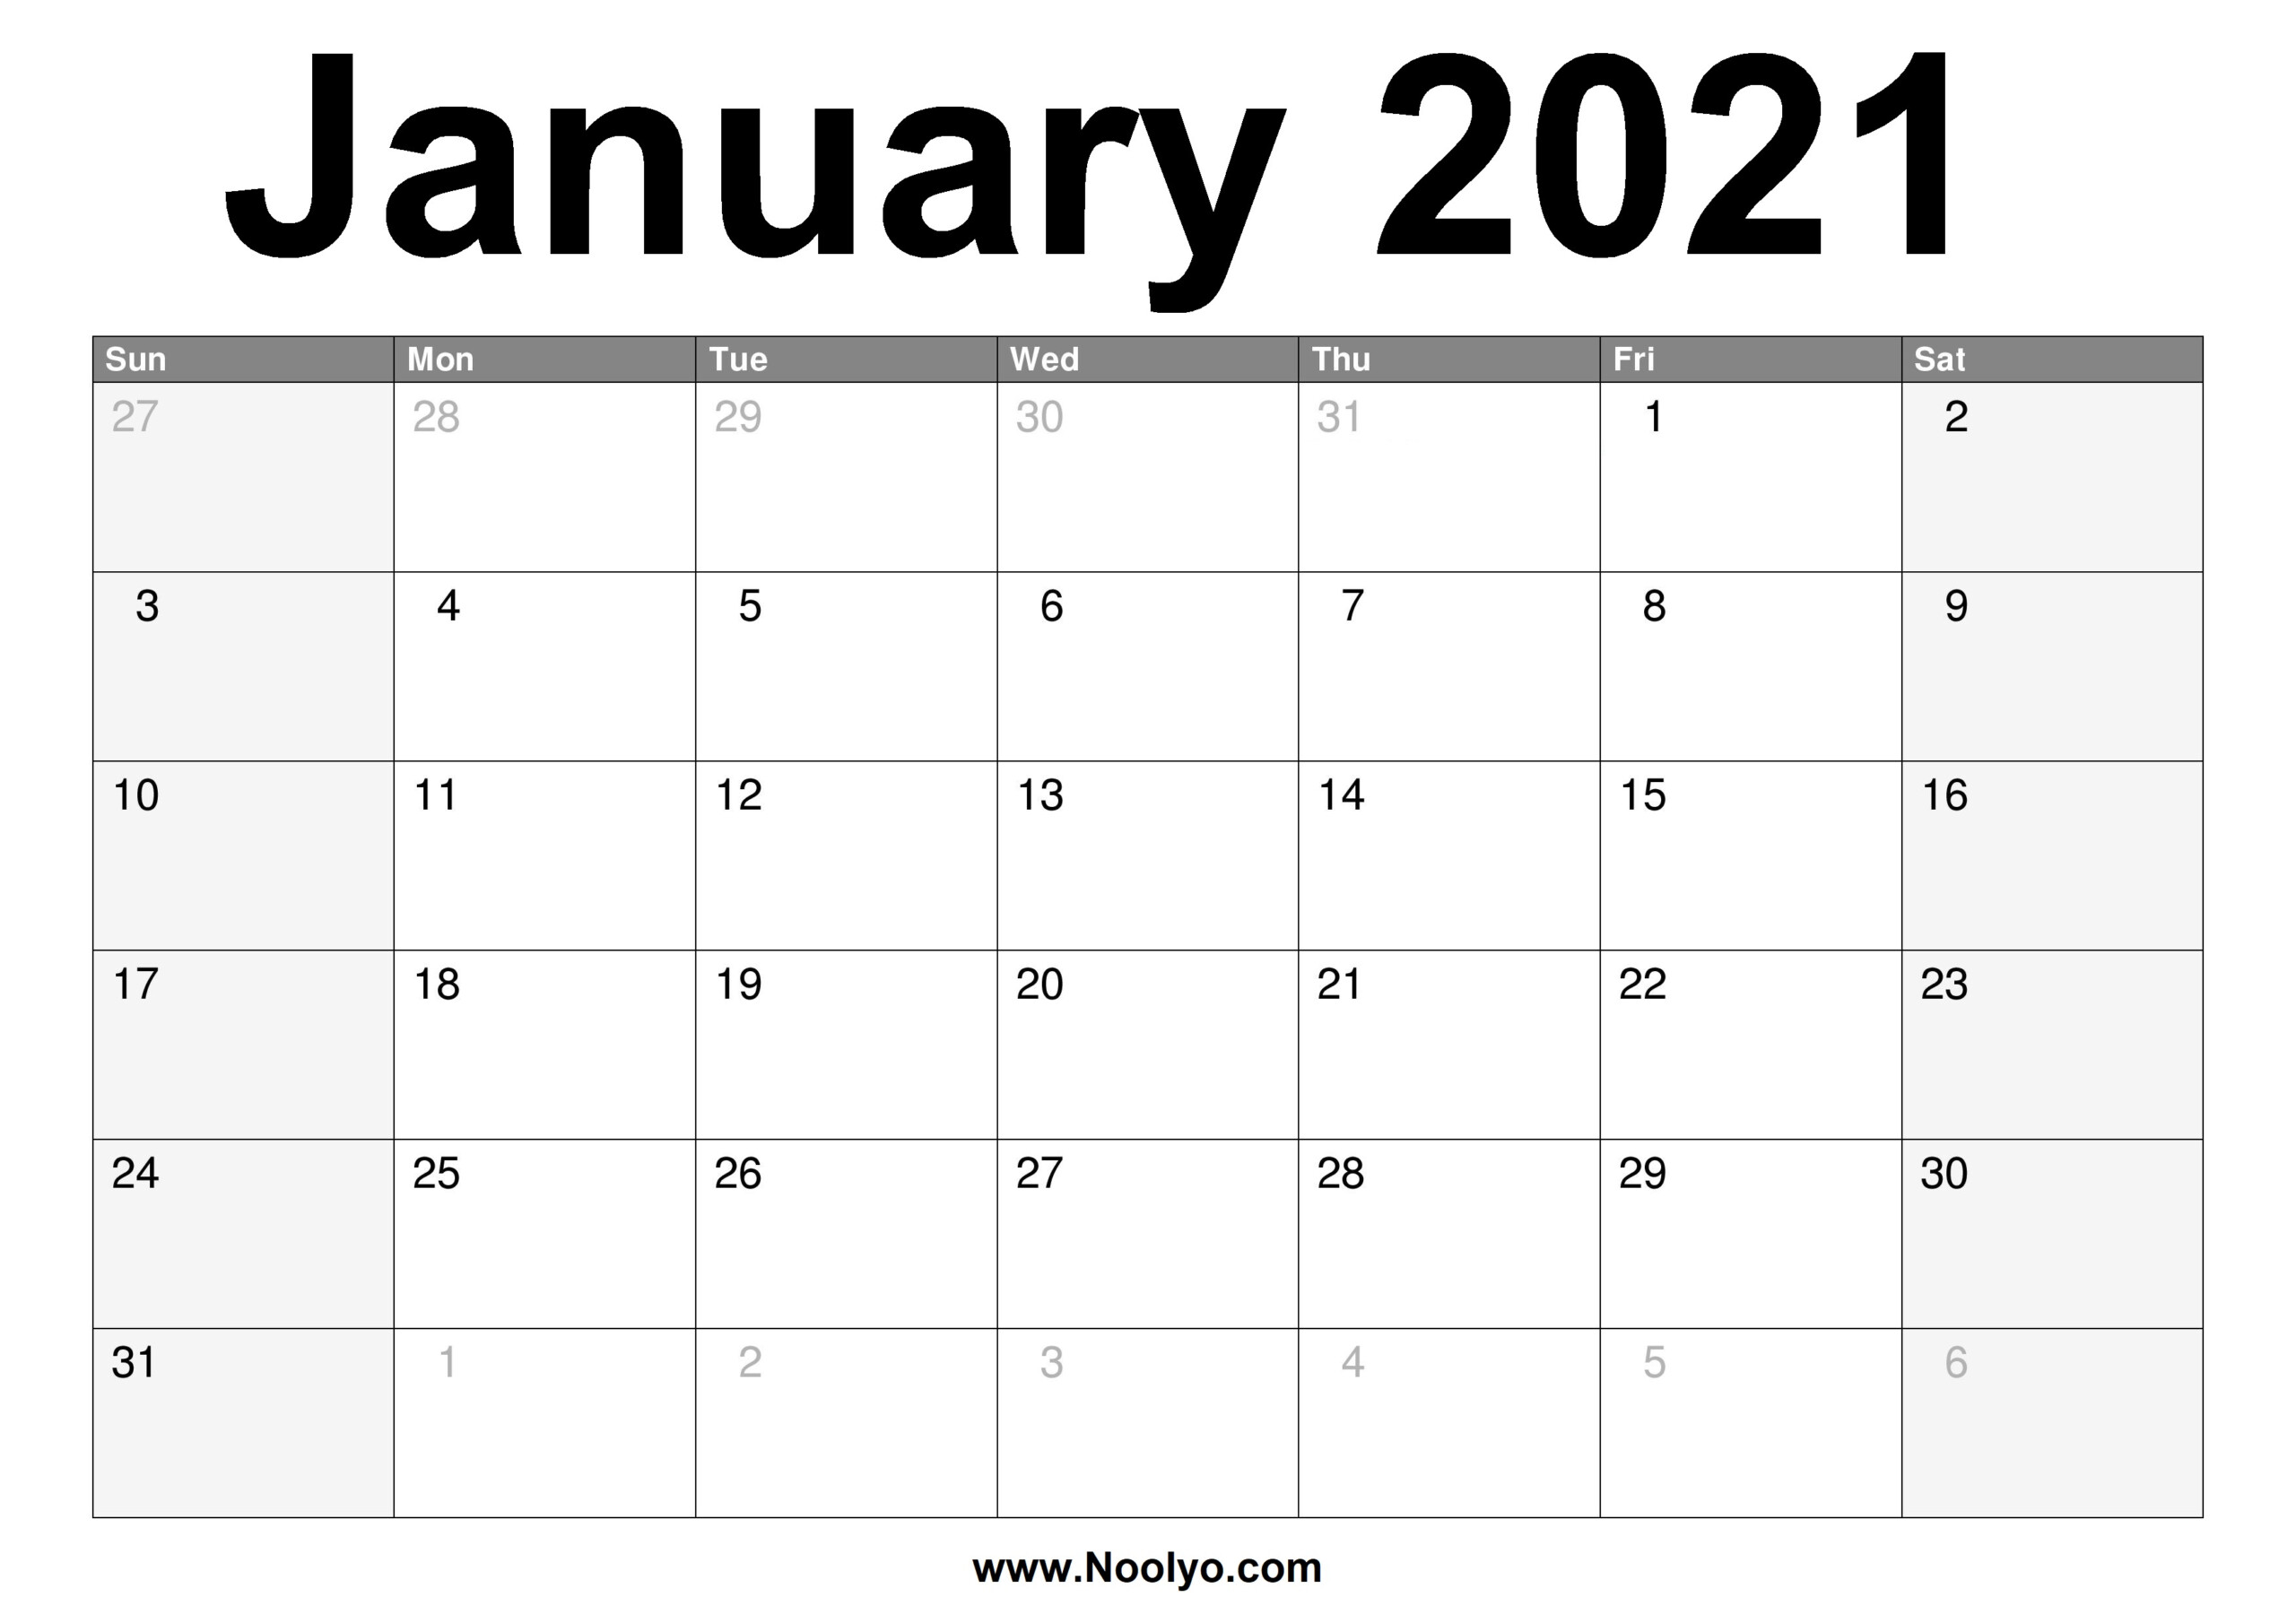 January 2021 Calendar Printable – Free Download – Noolyo